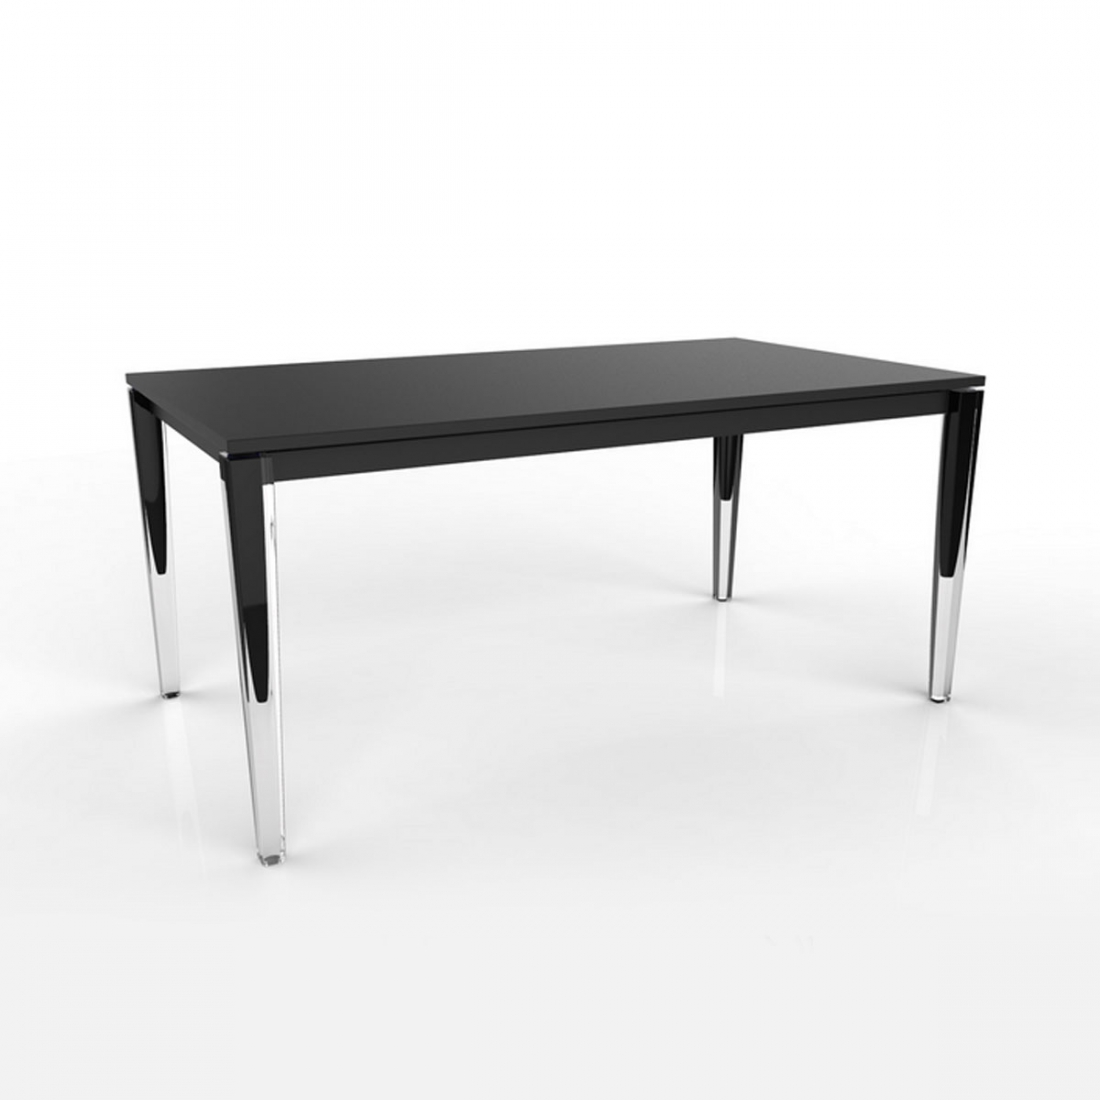 Table avec rallonge design magis zendart design - Table rallonge design ...